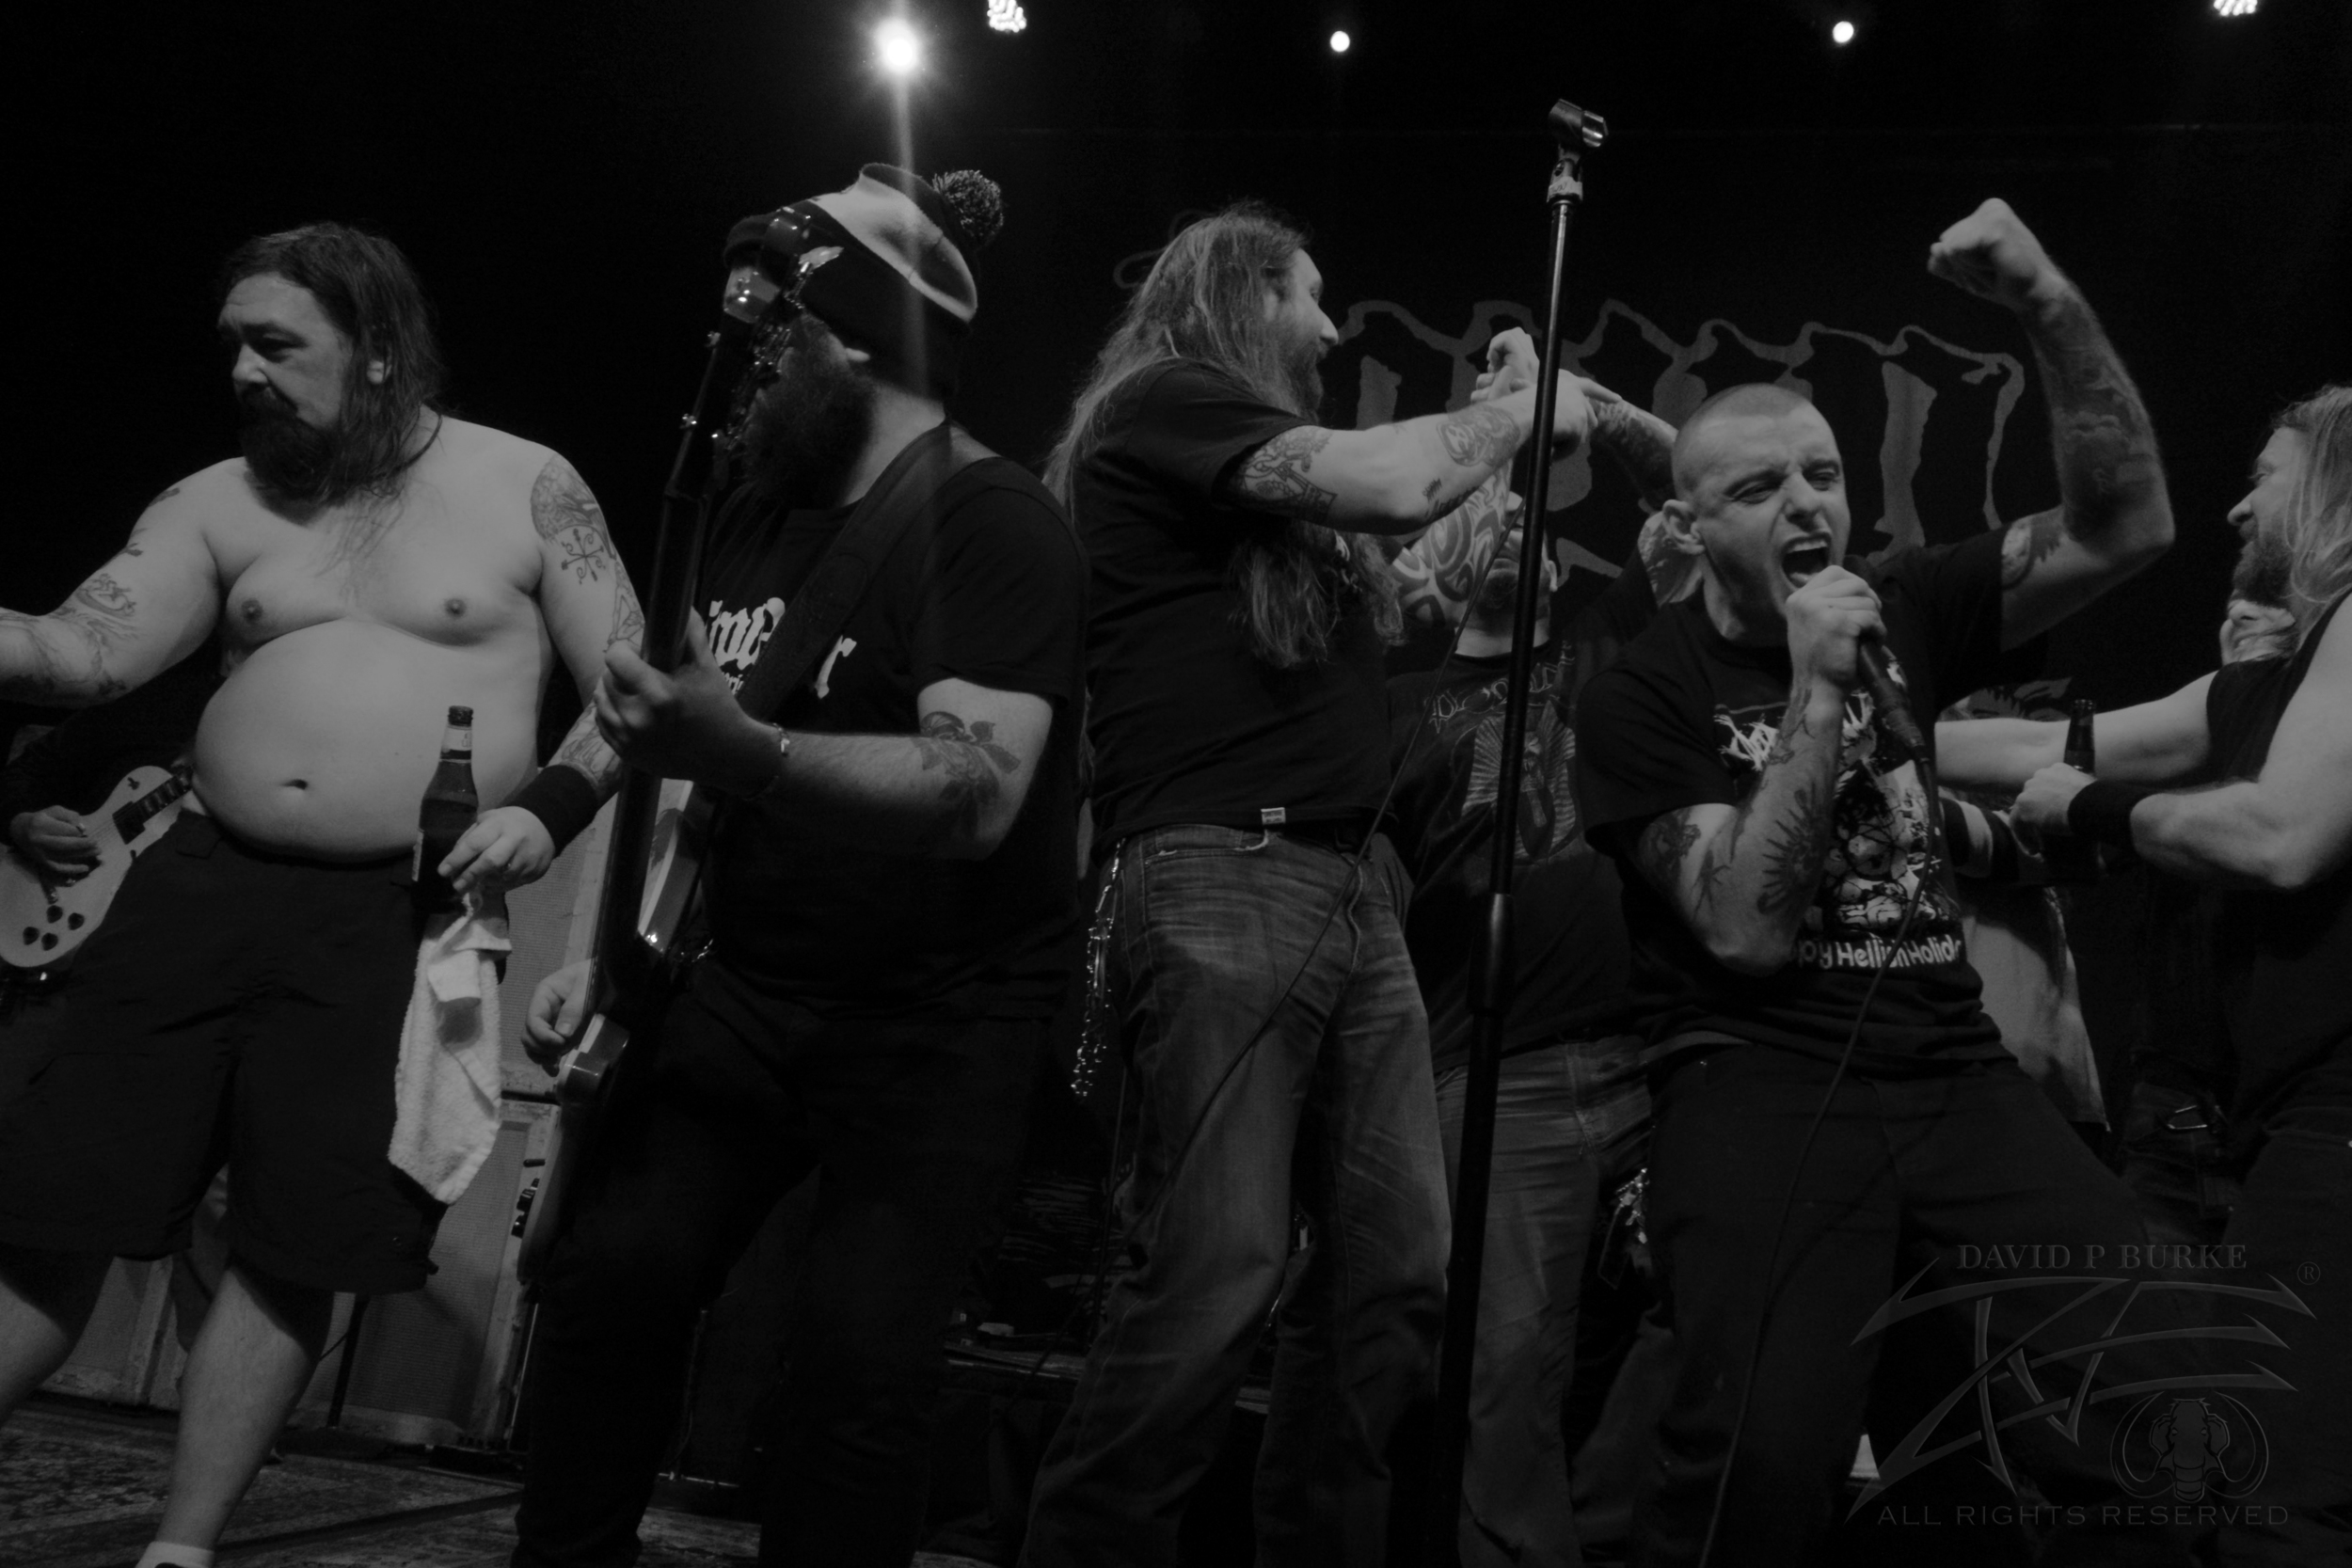 Members of Down, Orange Goblin and King Parrot unite for an epic final jam    photo: David Burke